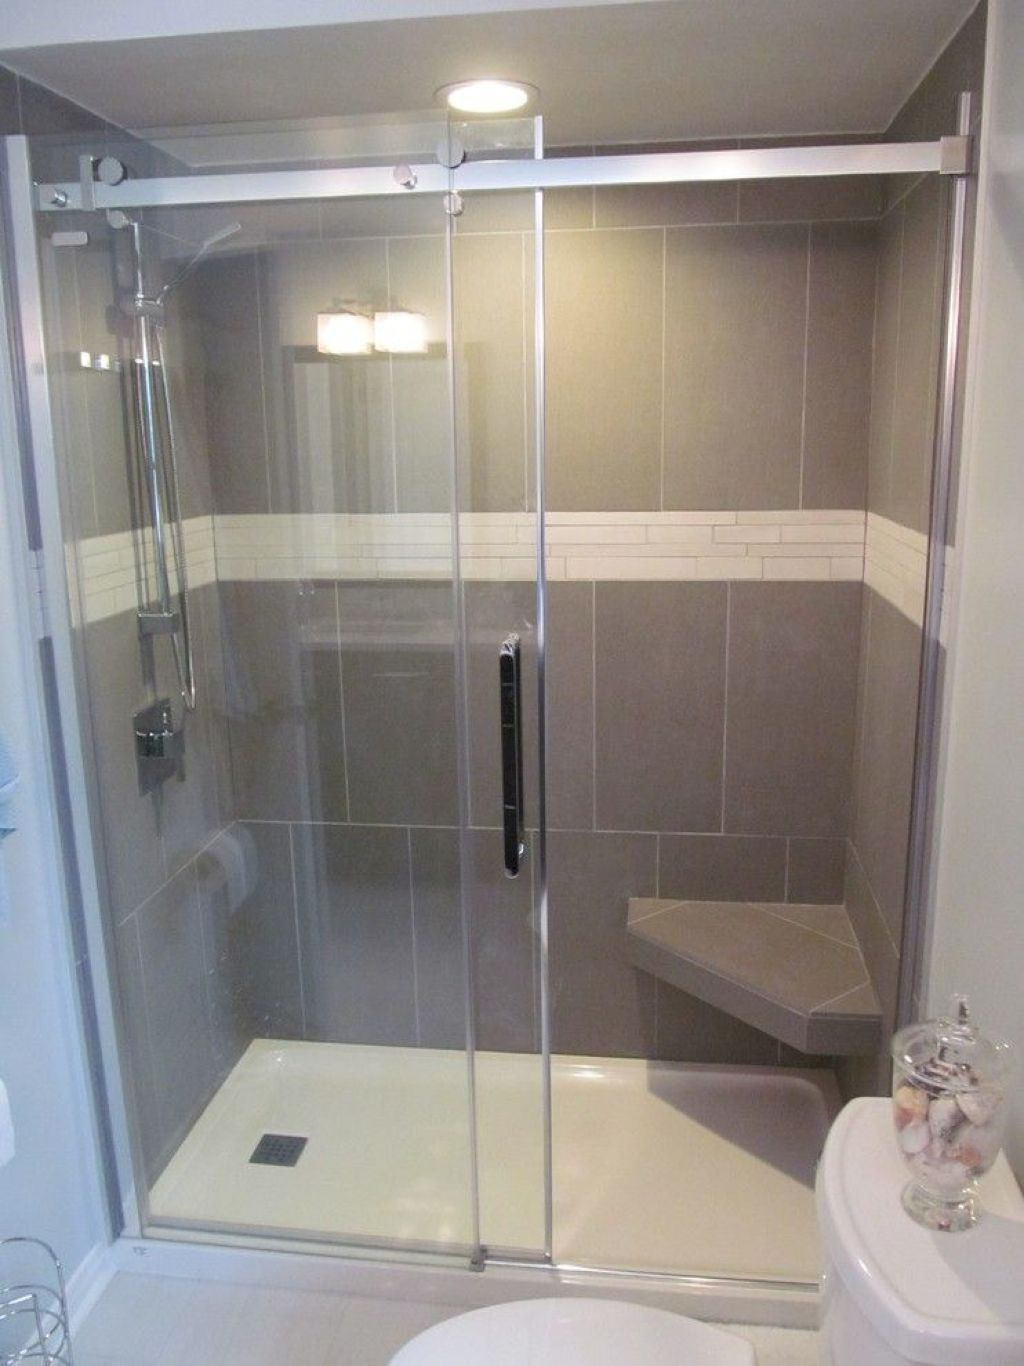 Related bathrooms in 2019 tub to shower conversion - Very small bathroom ideas ...